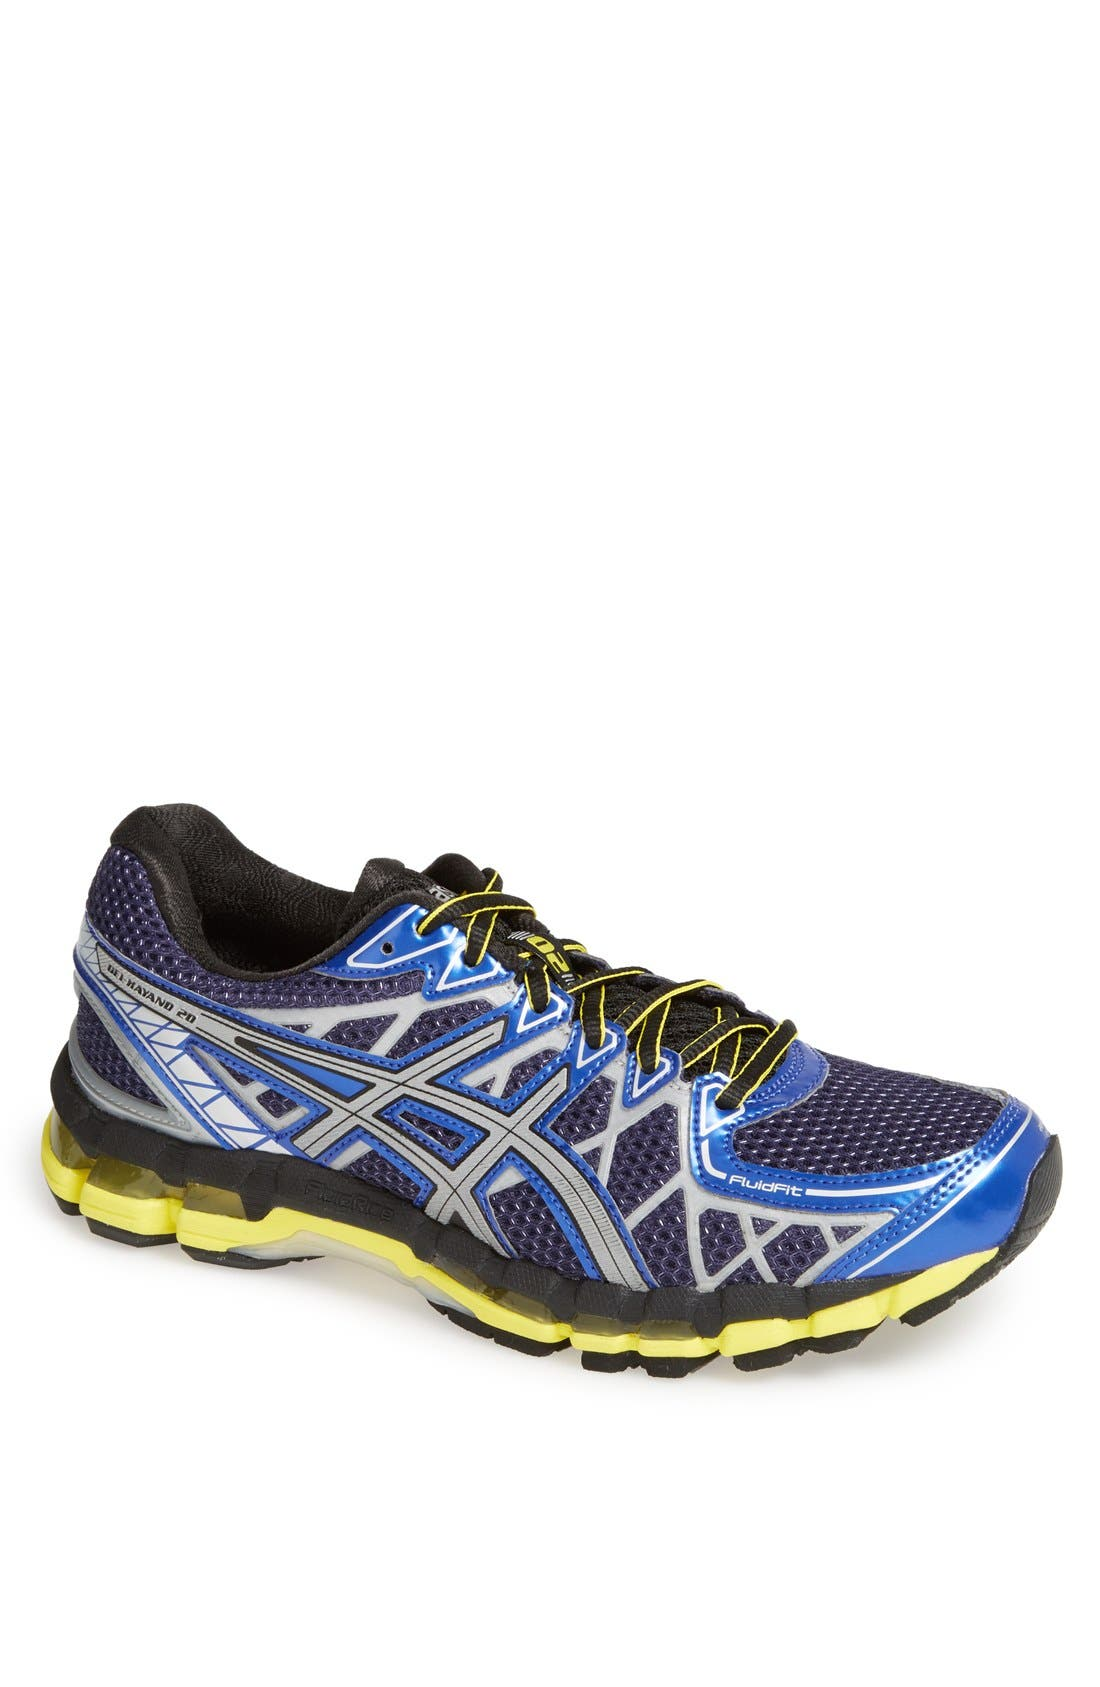 Main Image - ASICS® 'GEL-Kayano® 20 Lite' Running Shoe (Men)